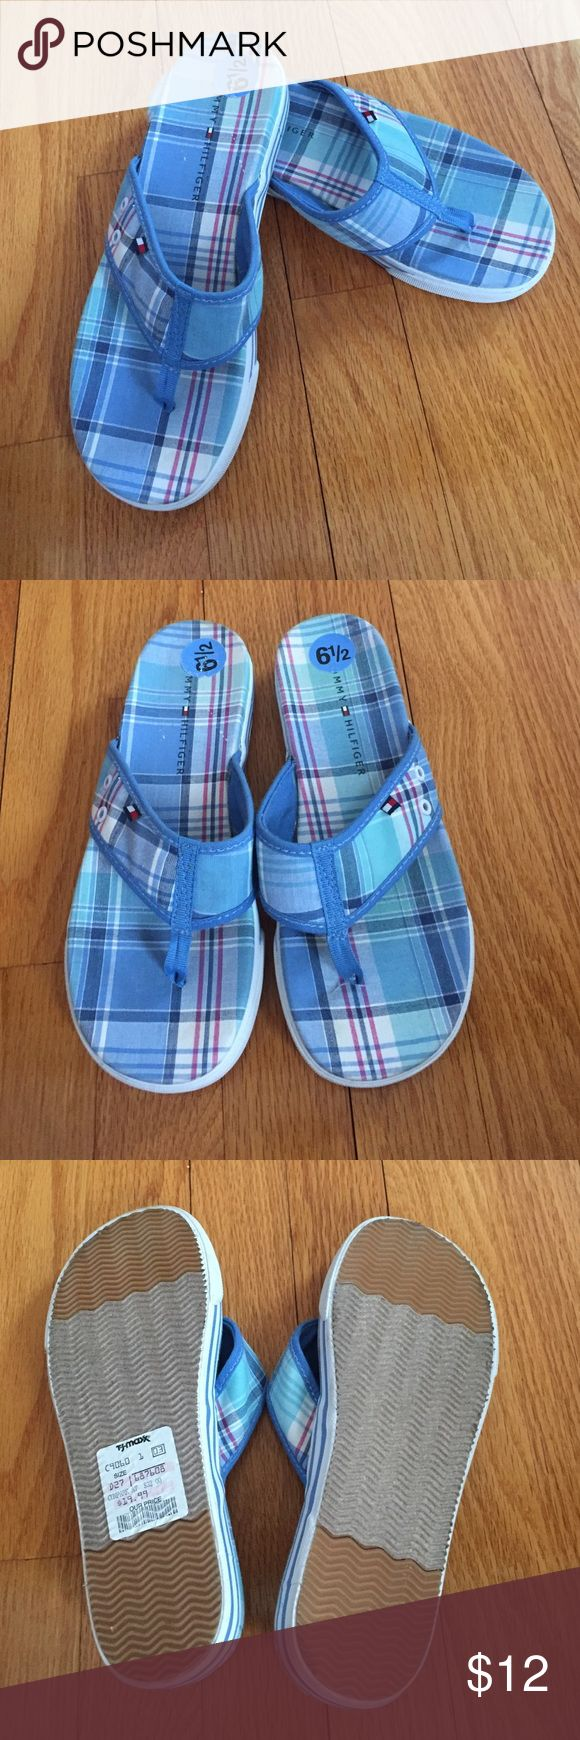 NWT TOMMY HILFIGER flip flops NWT TOMMY HILFIGER flip flops! Great shoe, has a sneaker like base for easy walking! Size 6.5. Smoke free pet free home. Will accept other offers! Tommy Hilfiger Shoes Sandals